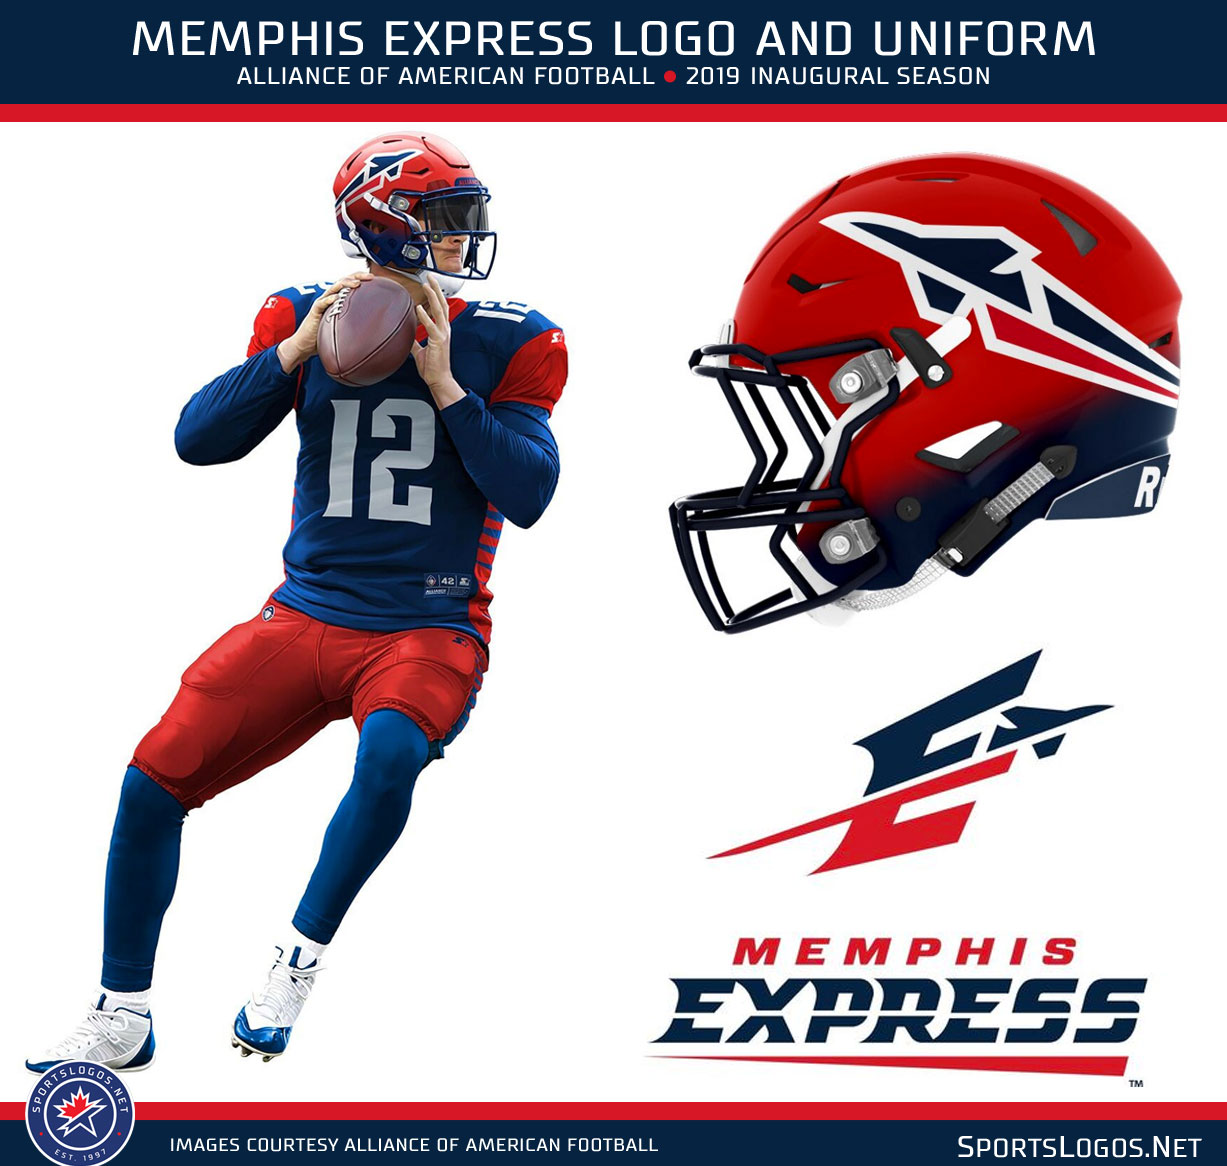 Memphis-Express-AAF-Uniforms-2019.jpg